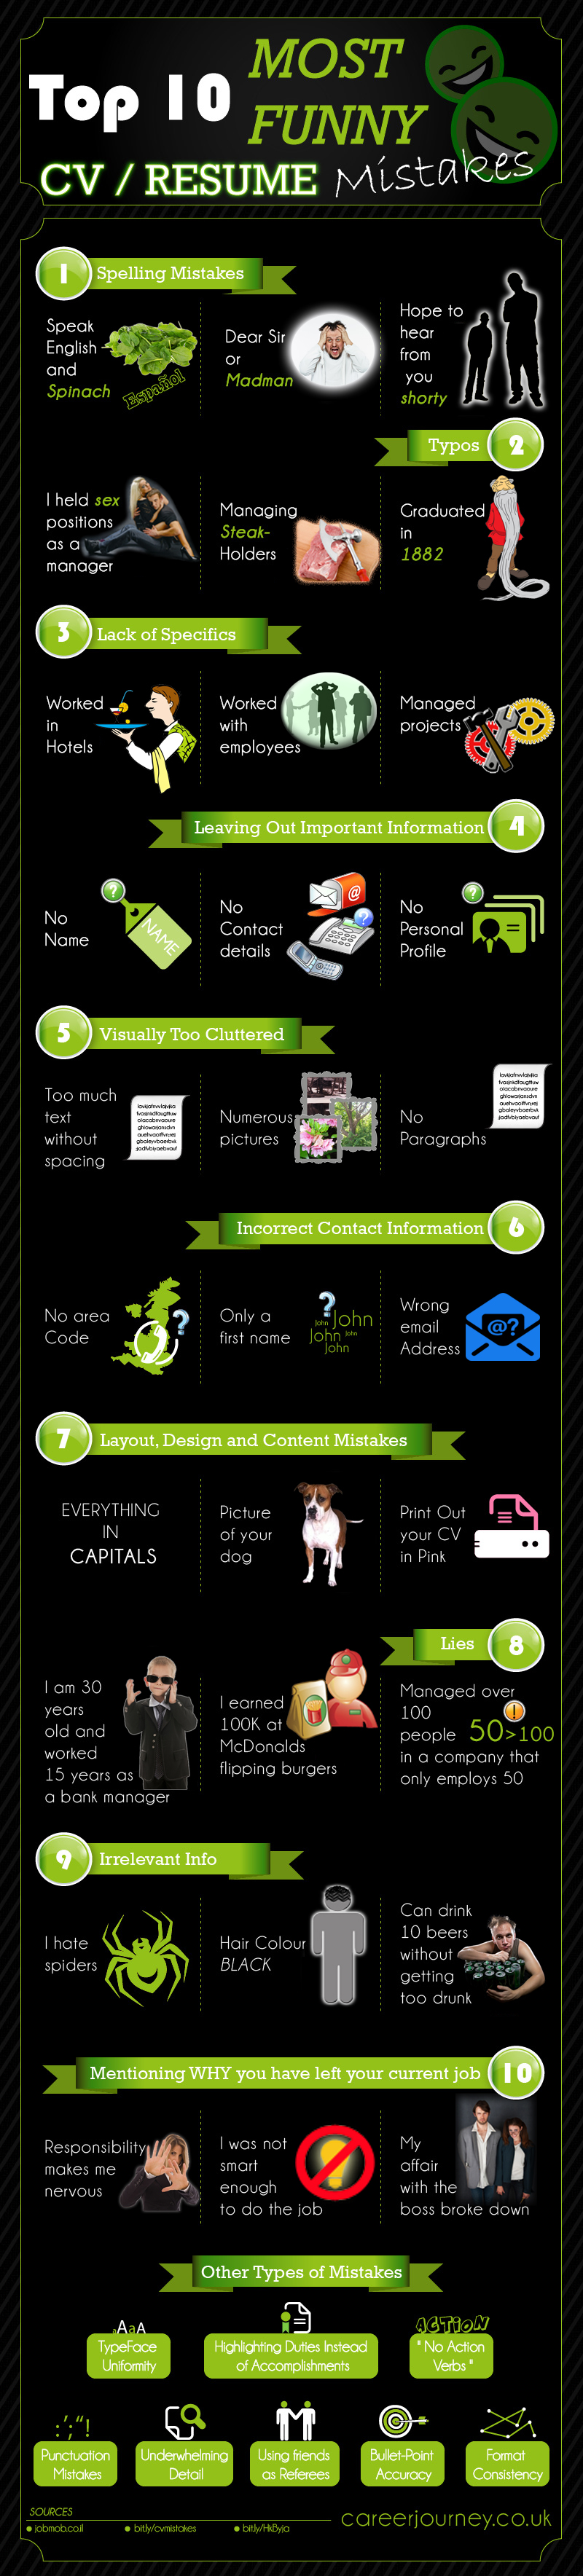 Top 10 CV Mistakes summarize #infographic